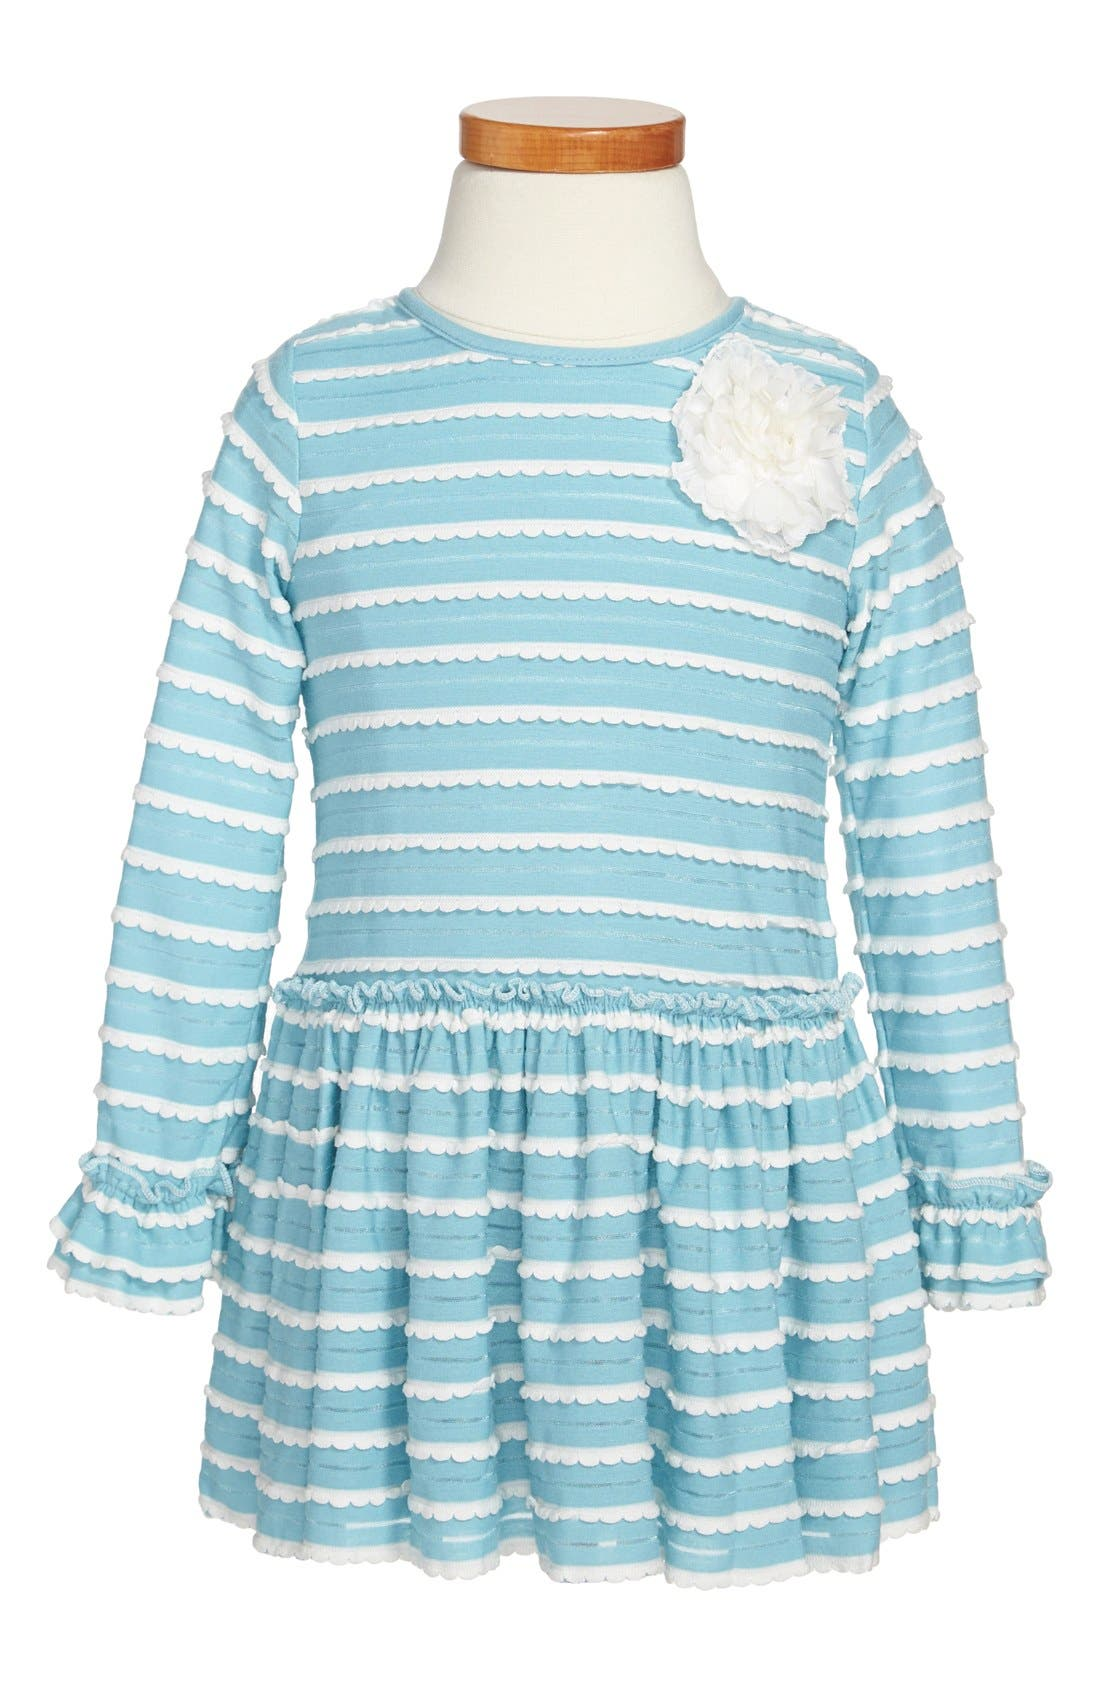 Alternate Image 1 Selected - Pippa & Julie Scallop Knit Dress (Toddler Girls & Little Girls)